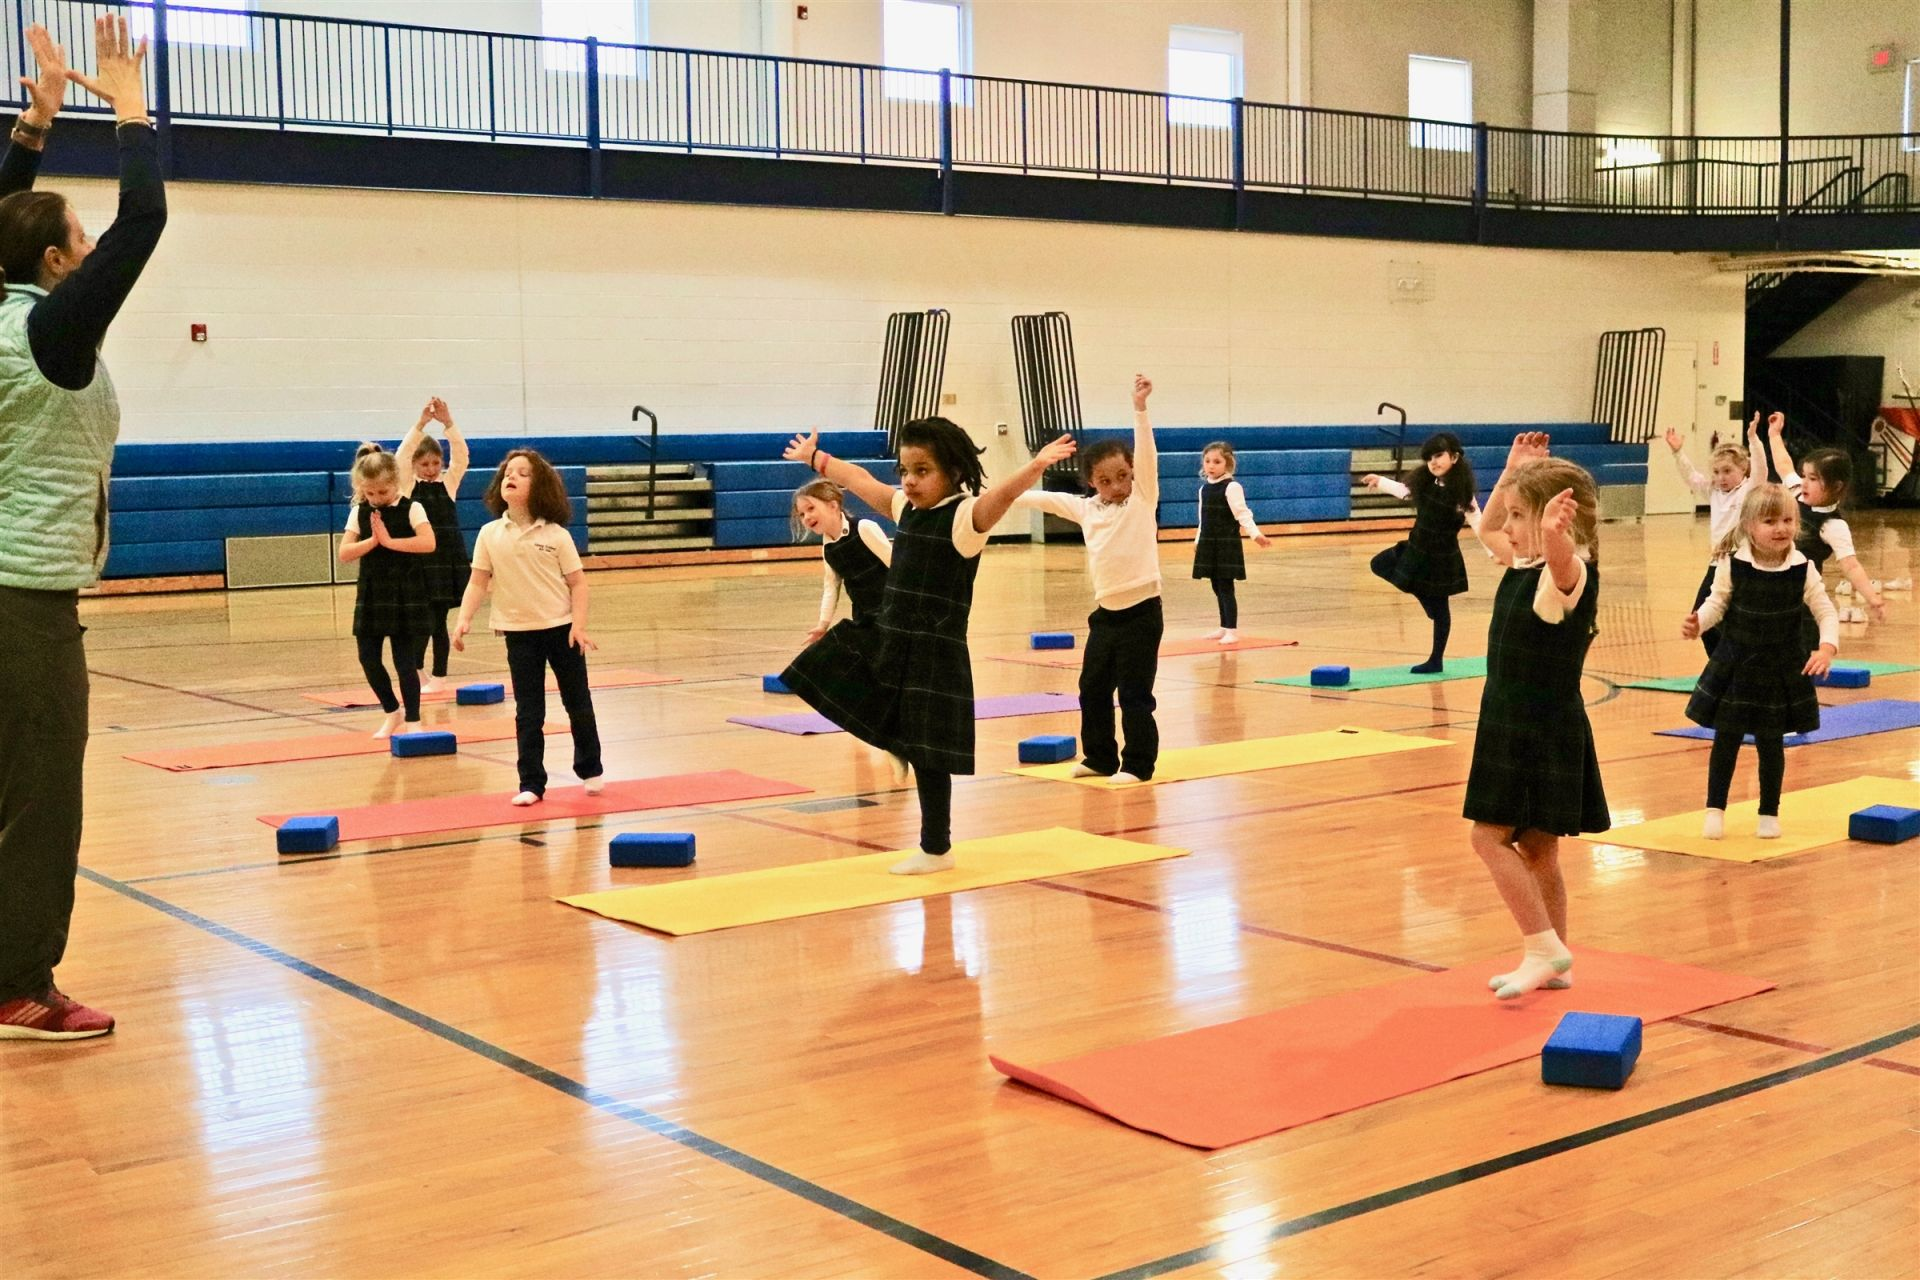 are offered daily; Physical Education curriculum includes swimming and ice skating.